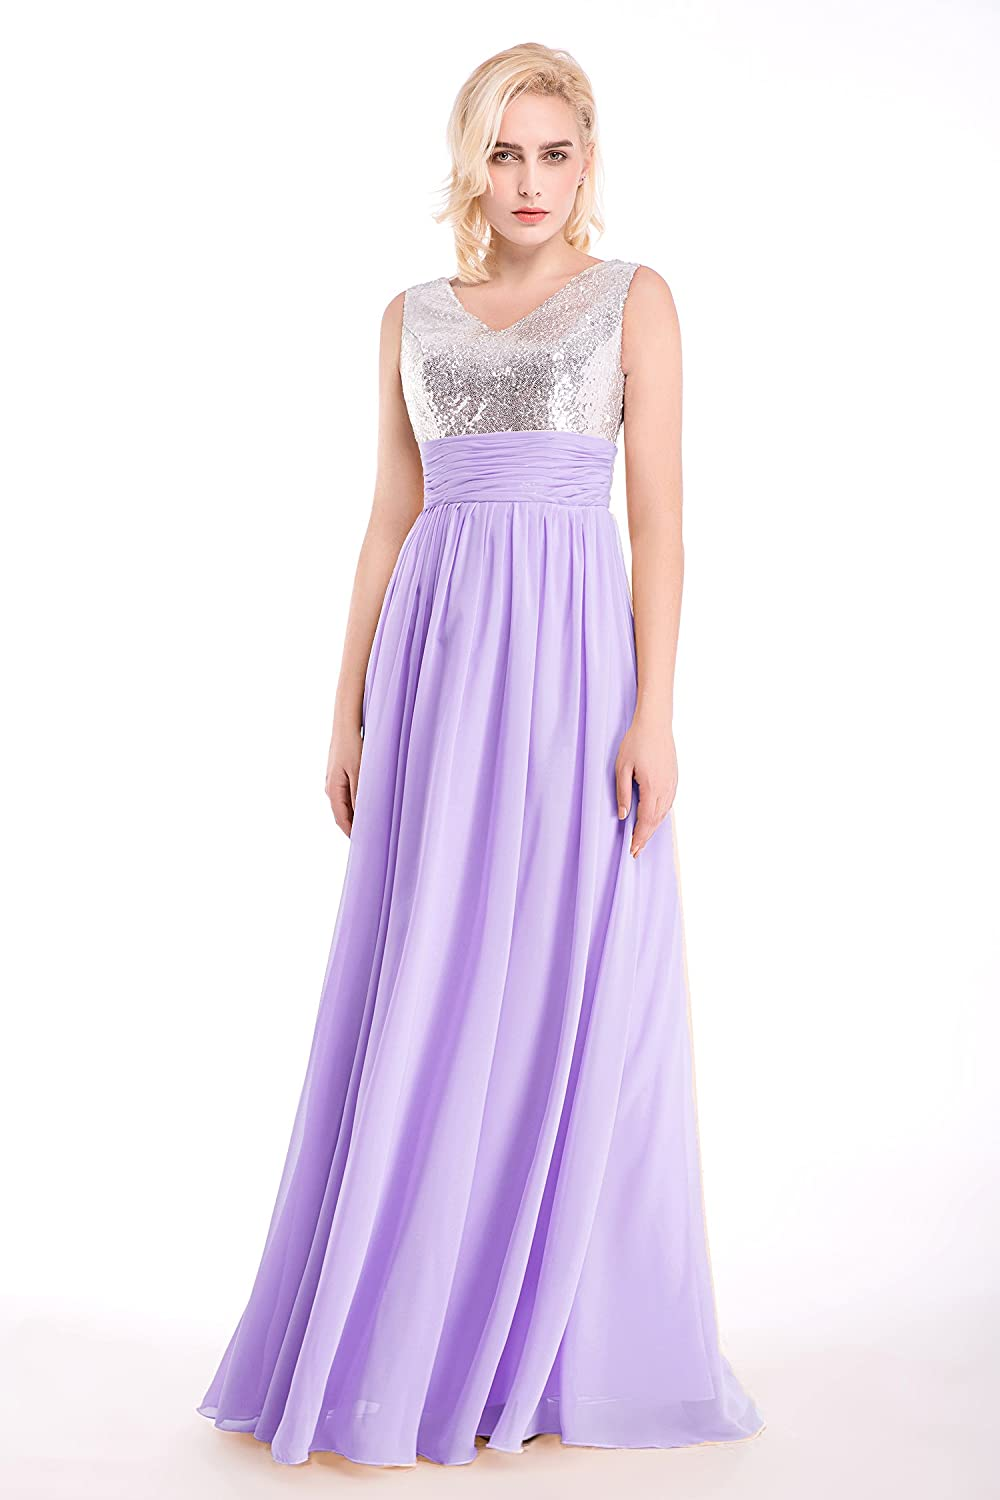 b9a53f24f2b3f Amazon.com: Jienixiya Women's V Neck A-line Chiffon Long Evening Dress (20  Plus, Lilac): Clothing